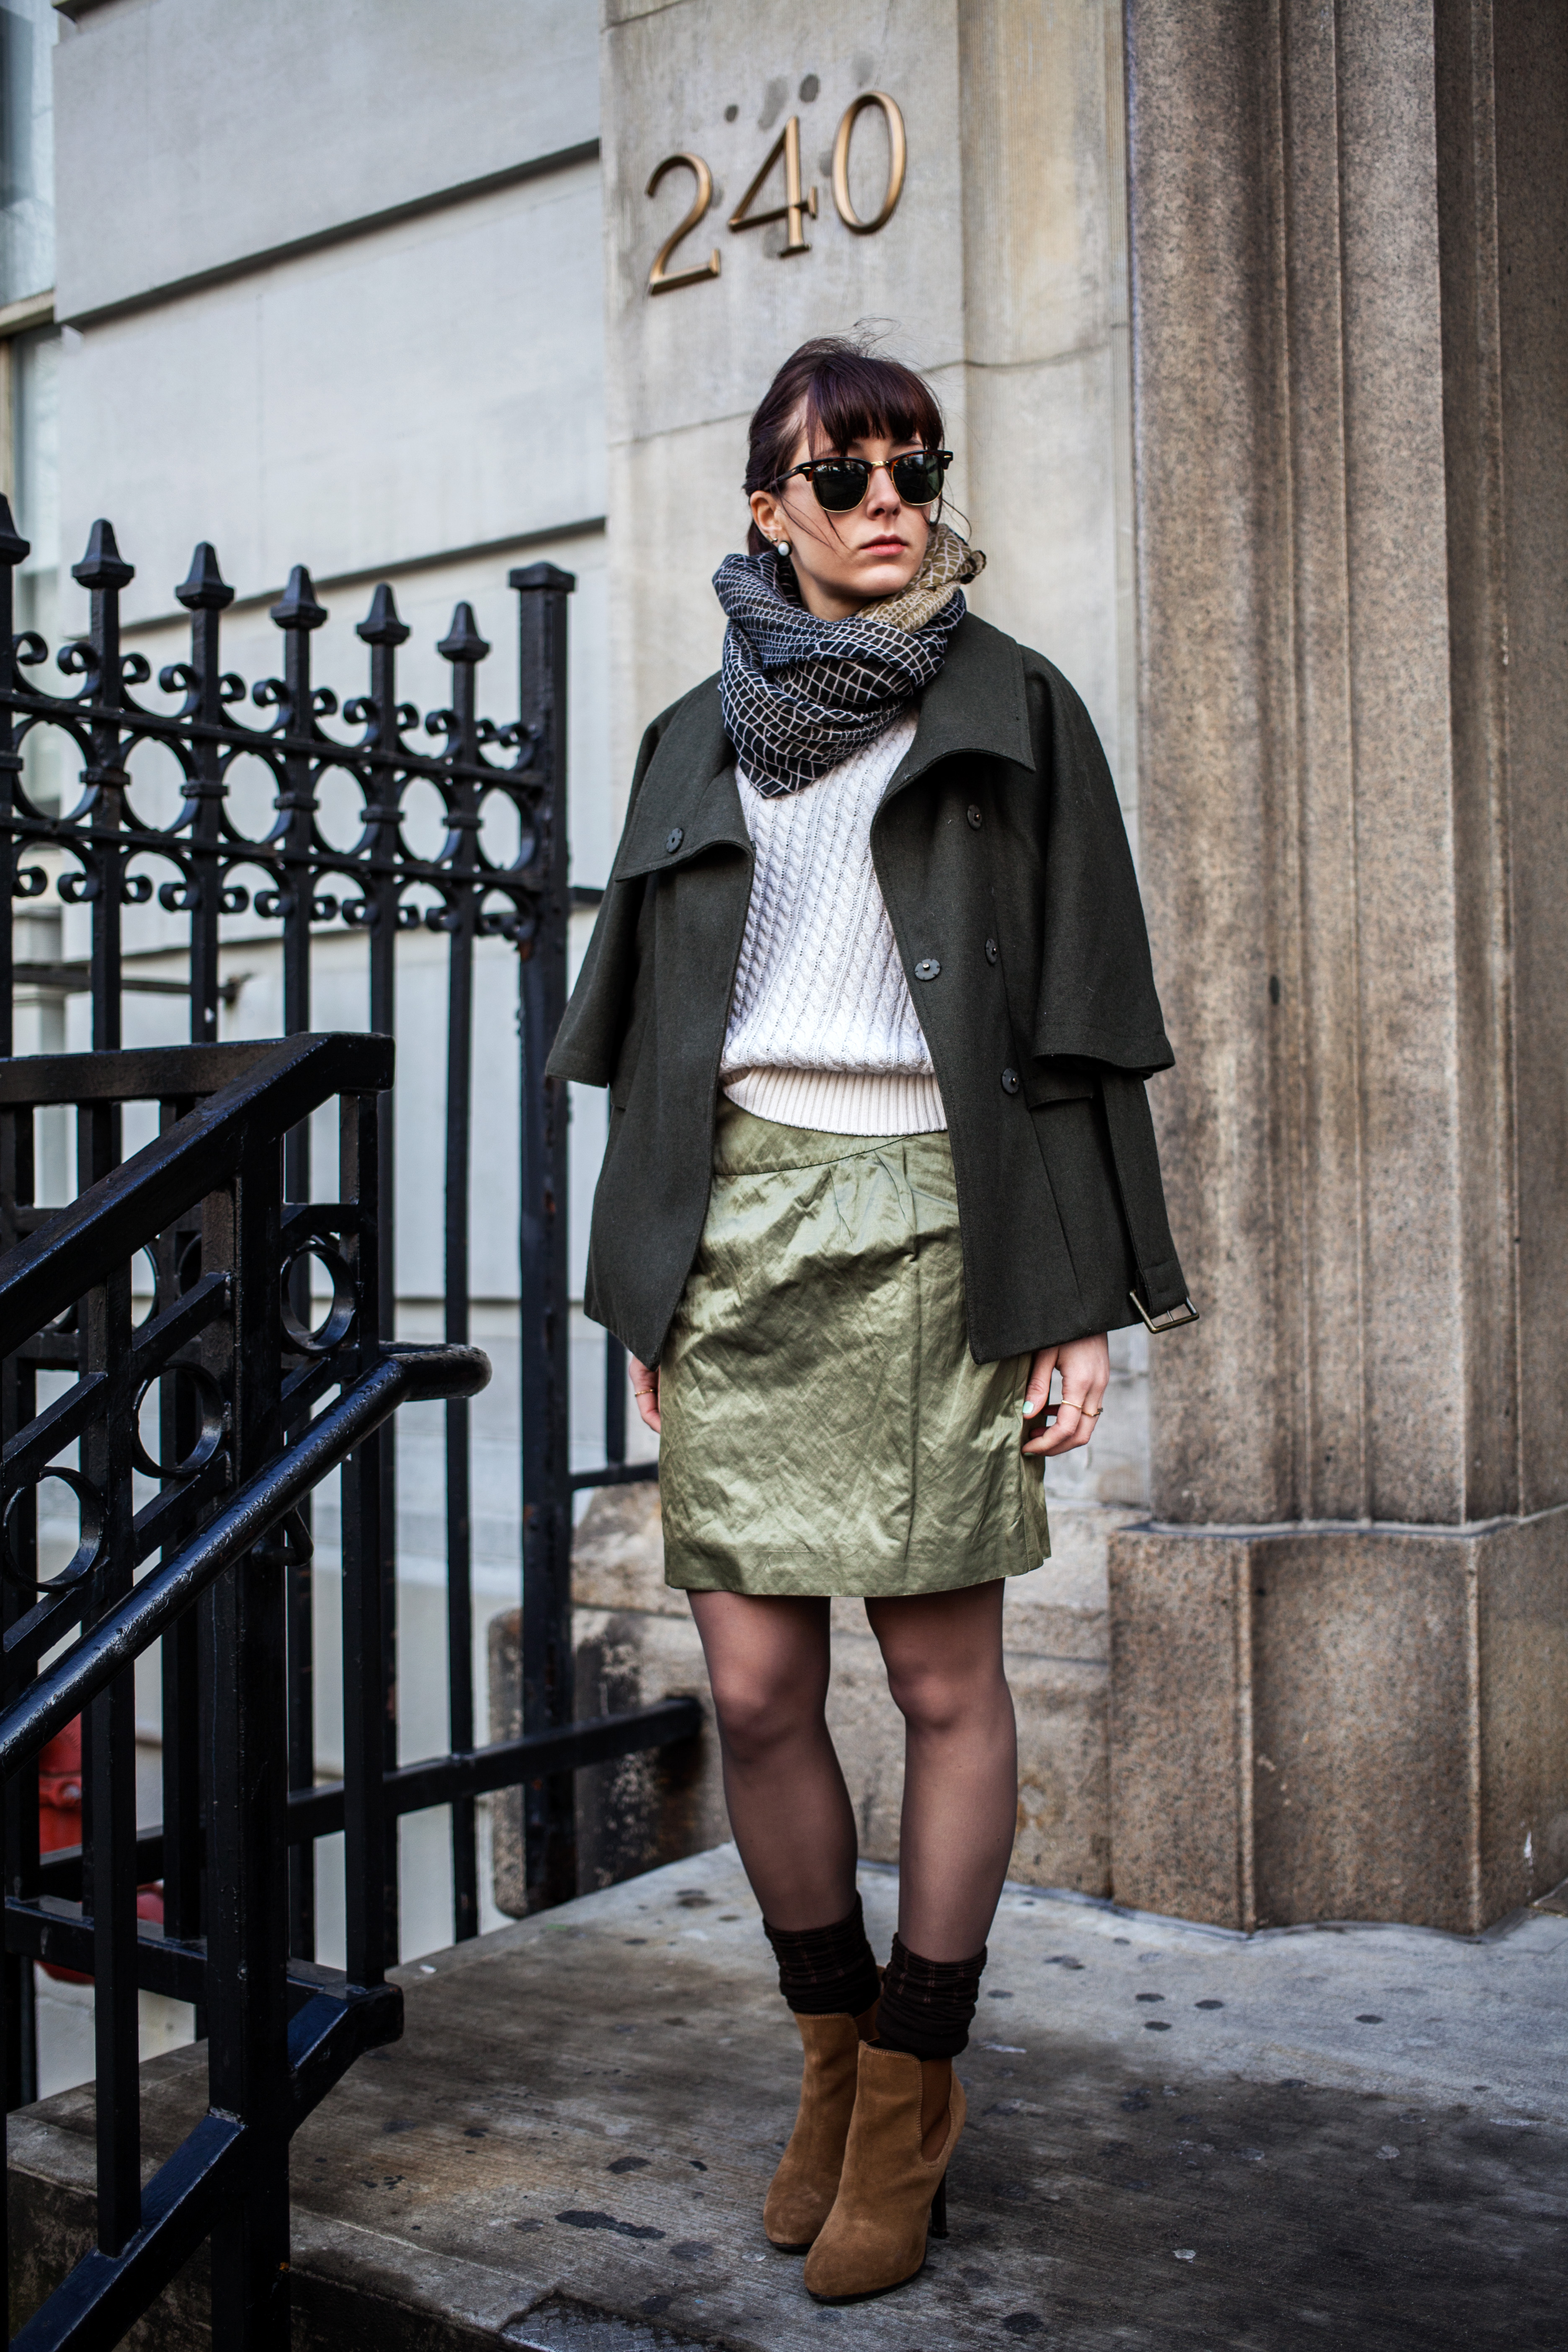 Michael Kors skirt, Ray Ban clubmaster, Jessica Simpson ankle boots